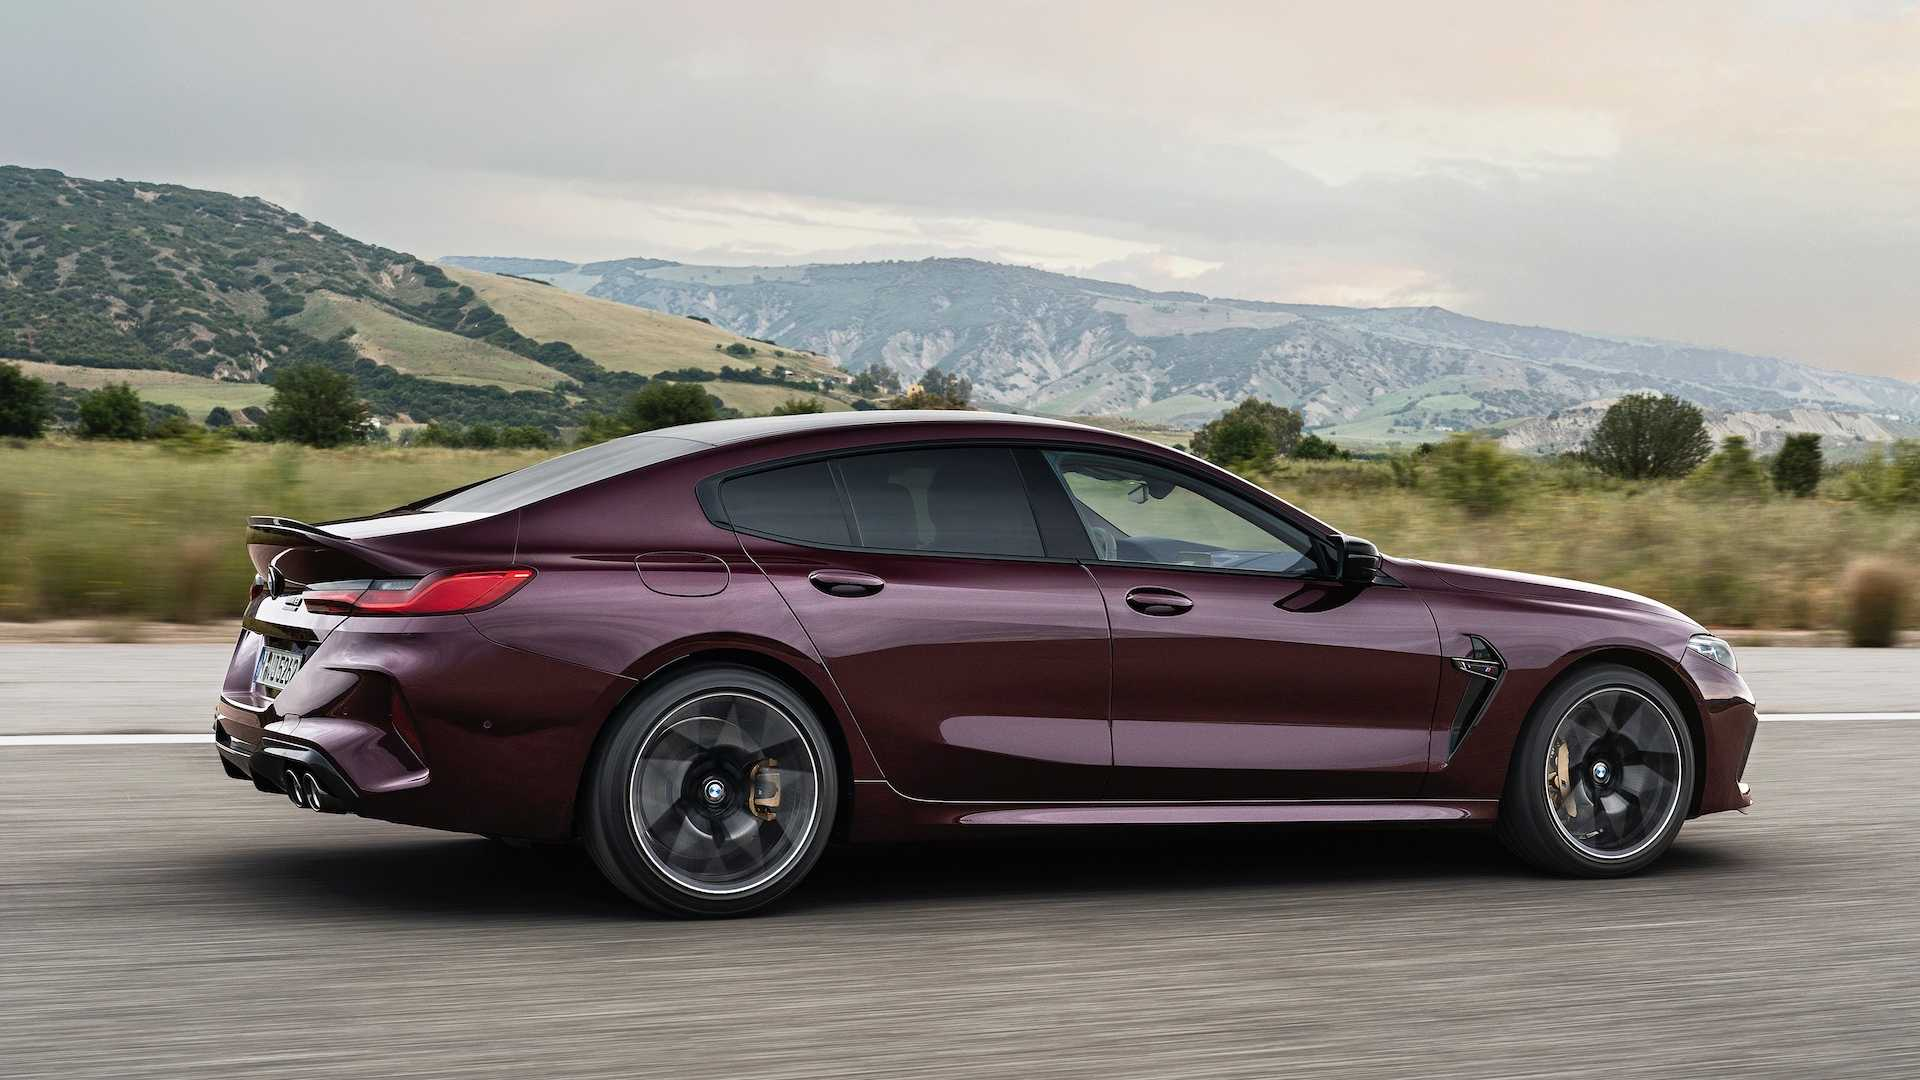 2020-bmw-m8-gran-coupe-competition-7